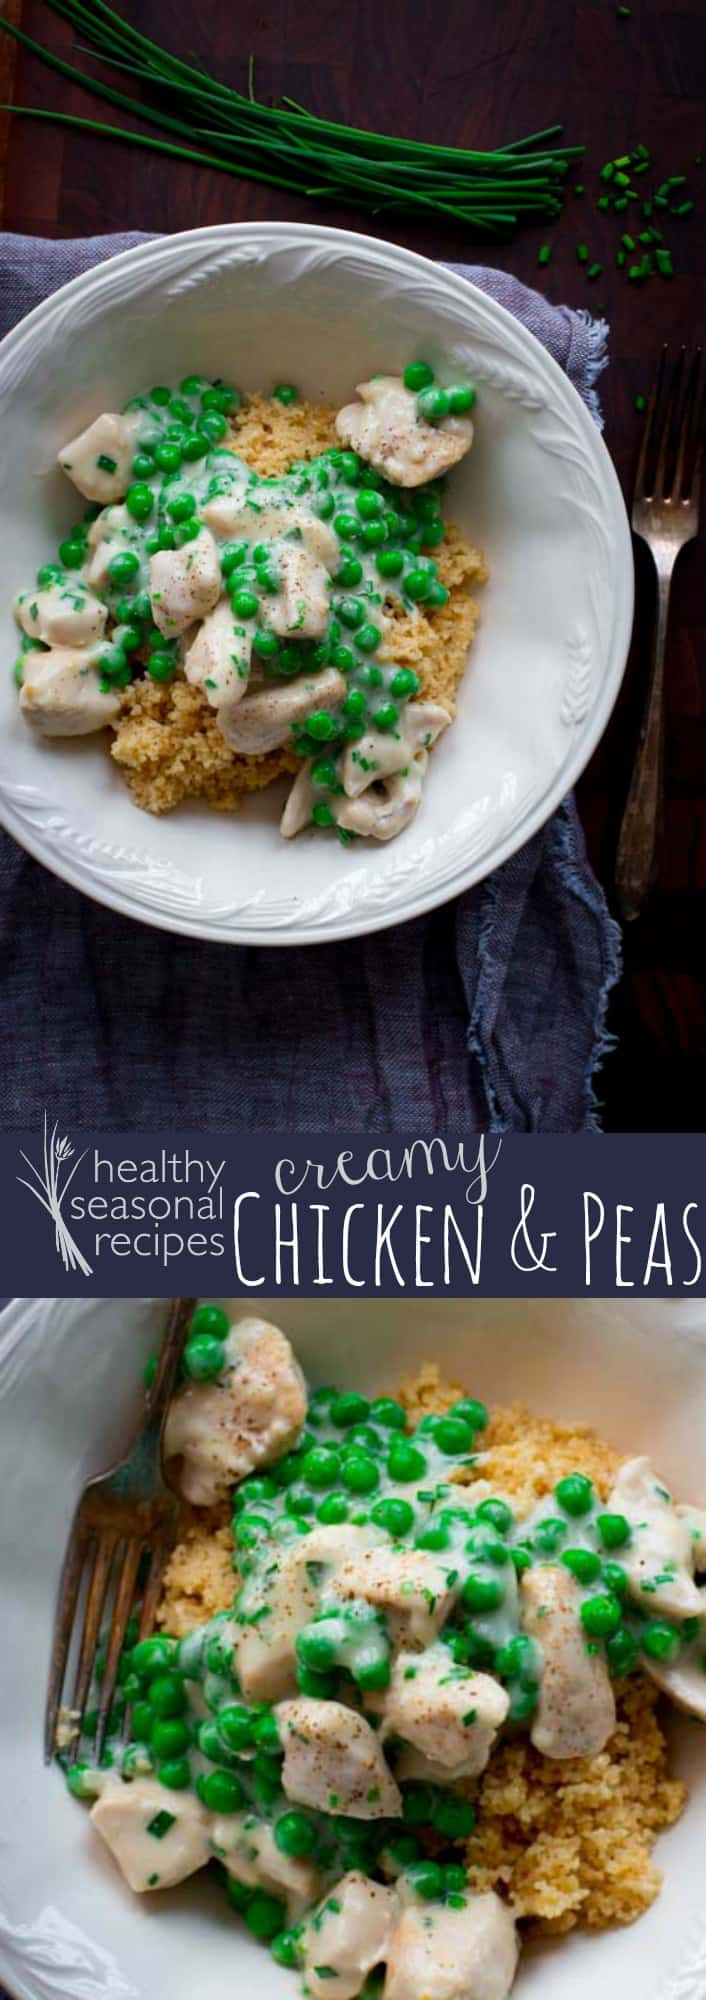 These creamy chicken and peas are are in only 18 minutes! This is an easy and healthy kid-friendly weeknight dinner. Serve over rice or pasta! #chicken #peas #dinner #weeknight #healthy #chives #sourcream #fast #quick #easy